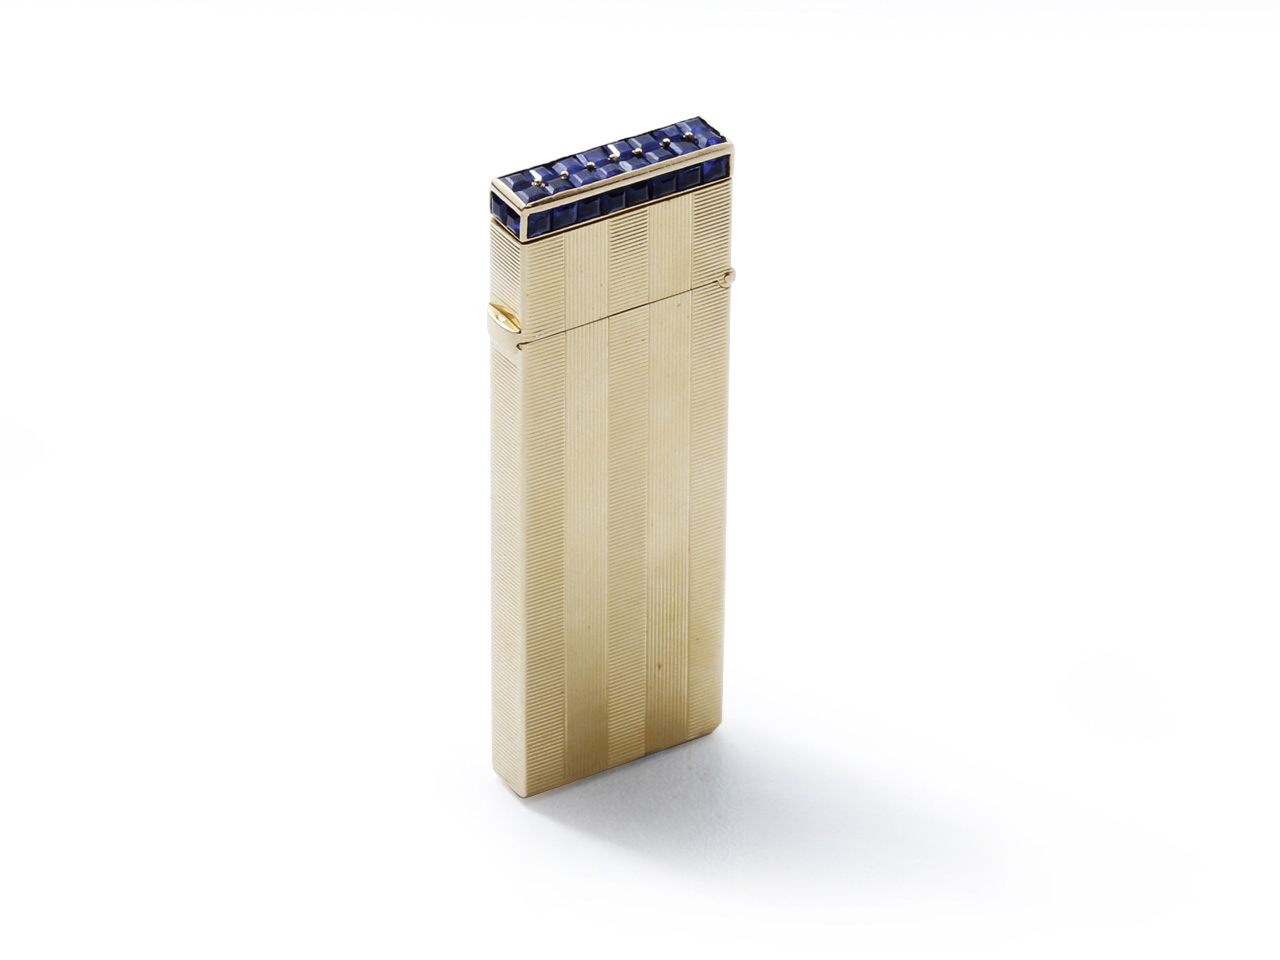 Van Cleef & Arpels, gold lighter guilloched with grooves. Paris, Drouot, Coutau-Bégarie auction house, 27 February, €2,190.